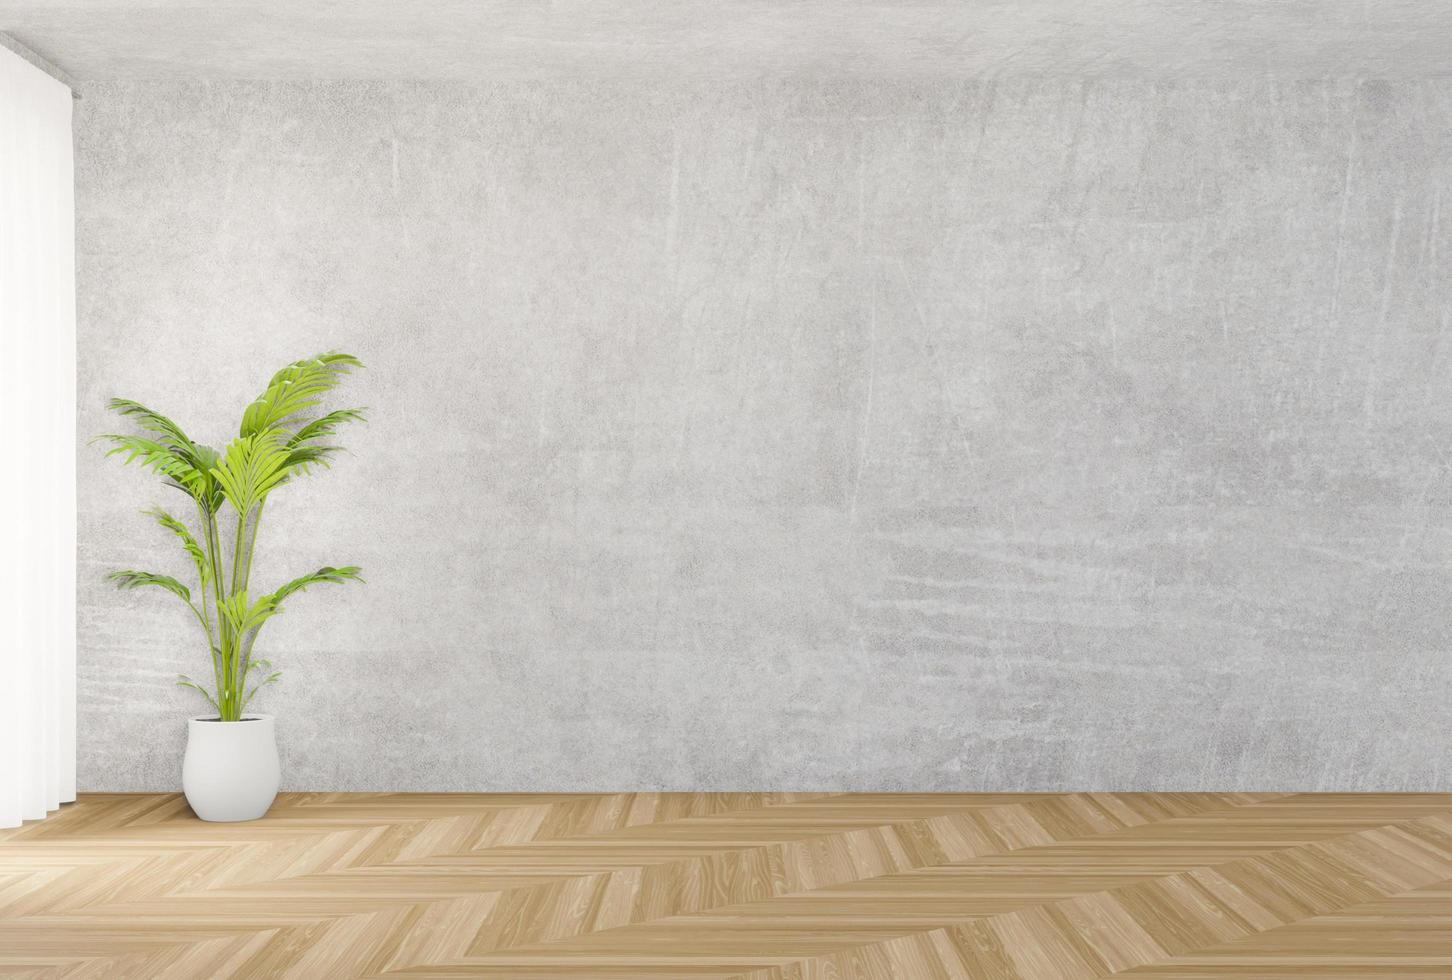 Concrete wall and wooden floor mock up  photo